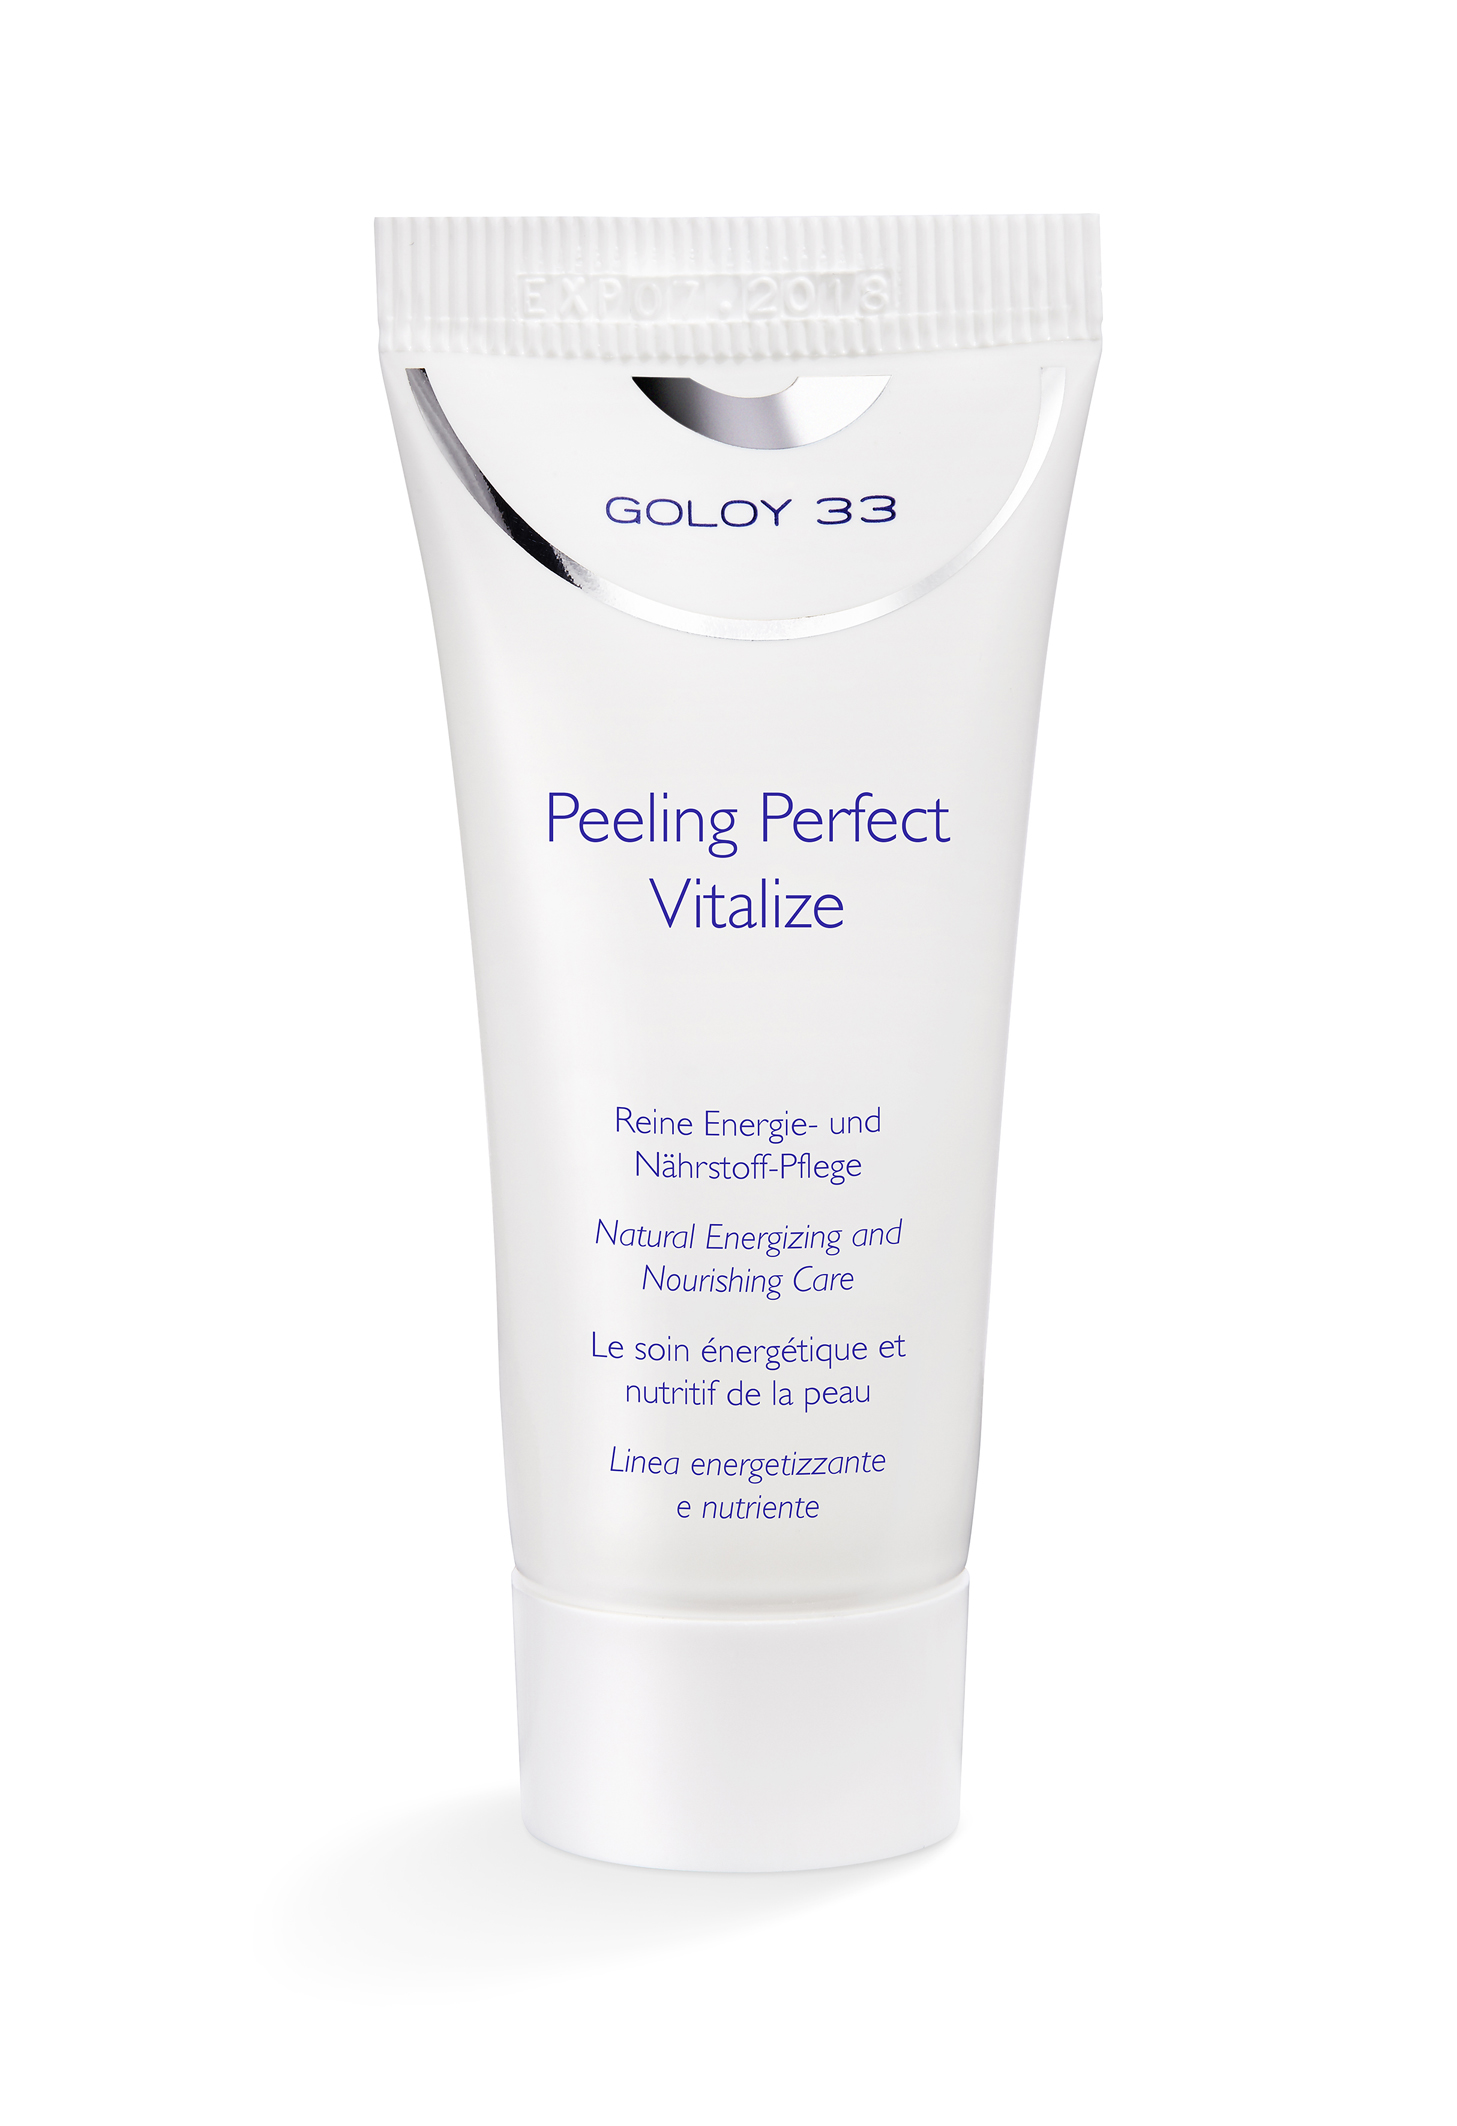 Goloy 33 Peeling Perfect